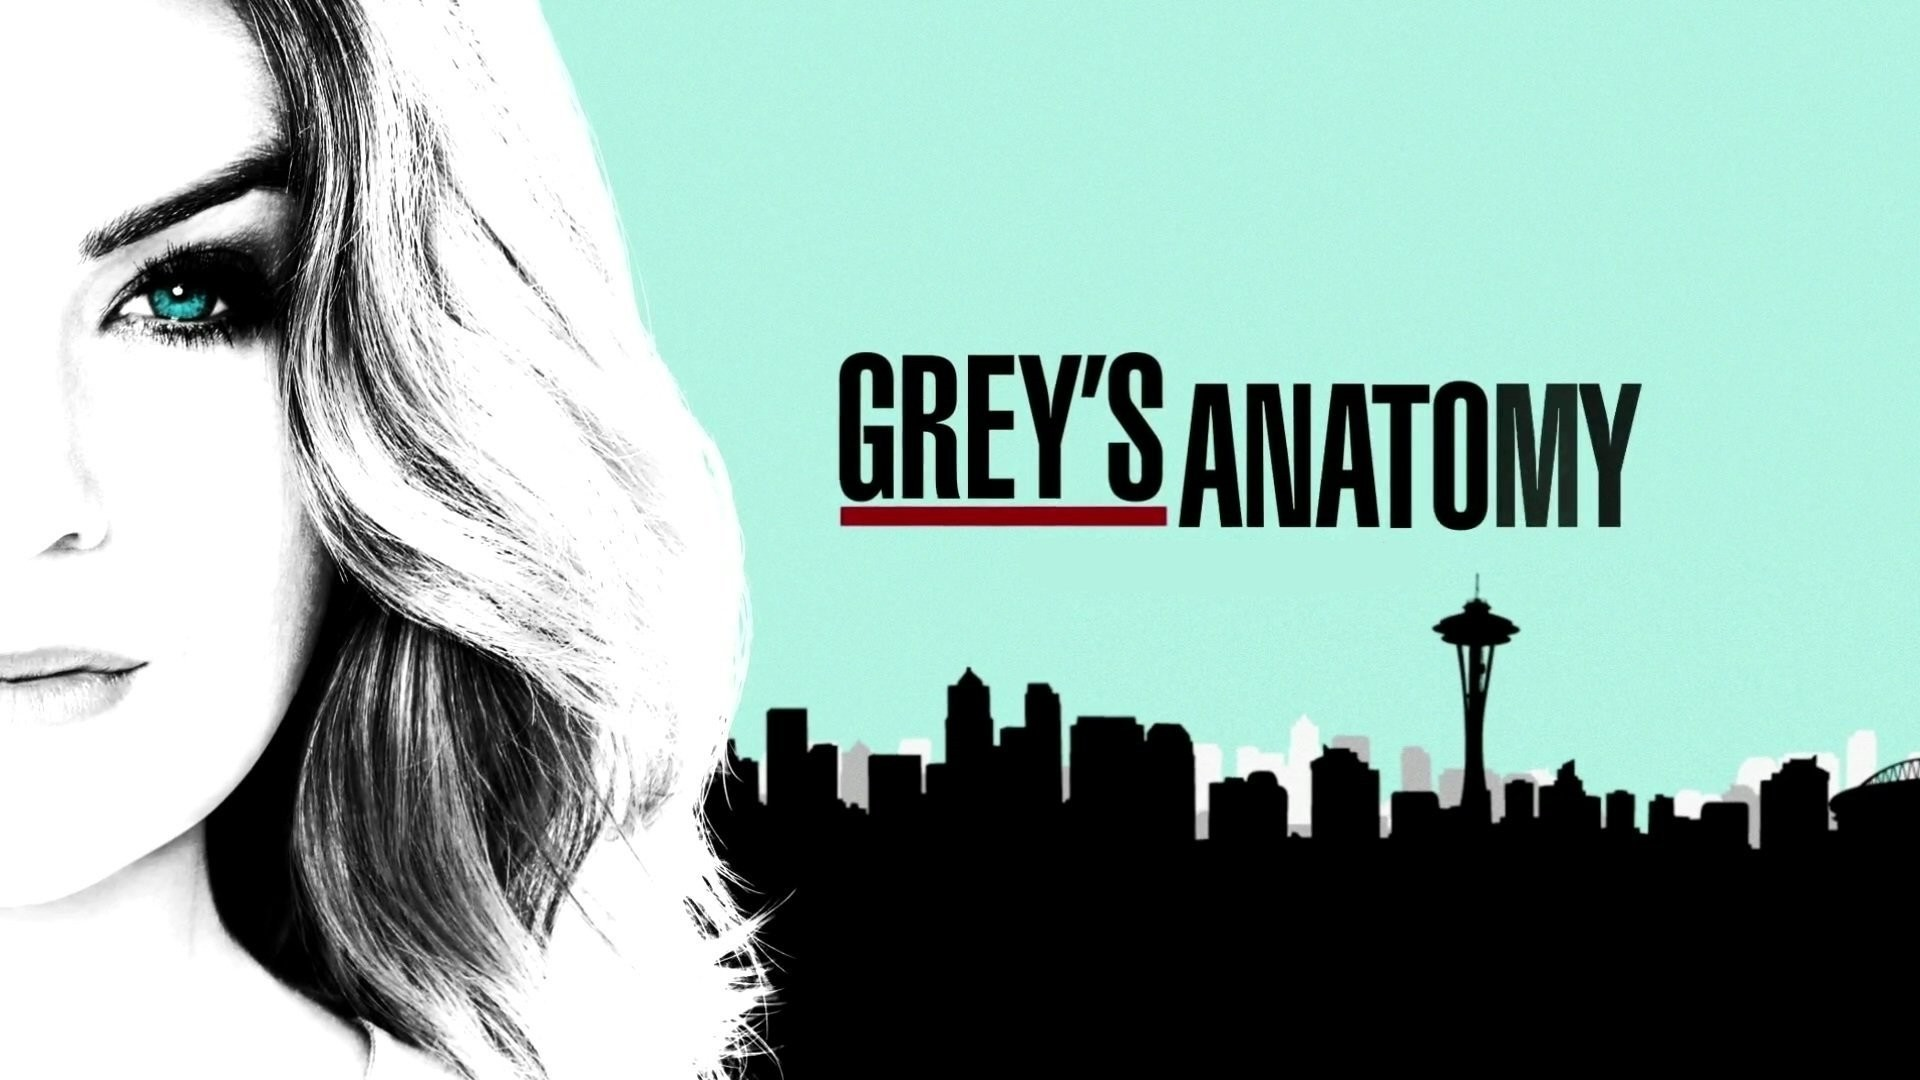 Grey's Anatomy hd desktop wallpaper